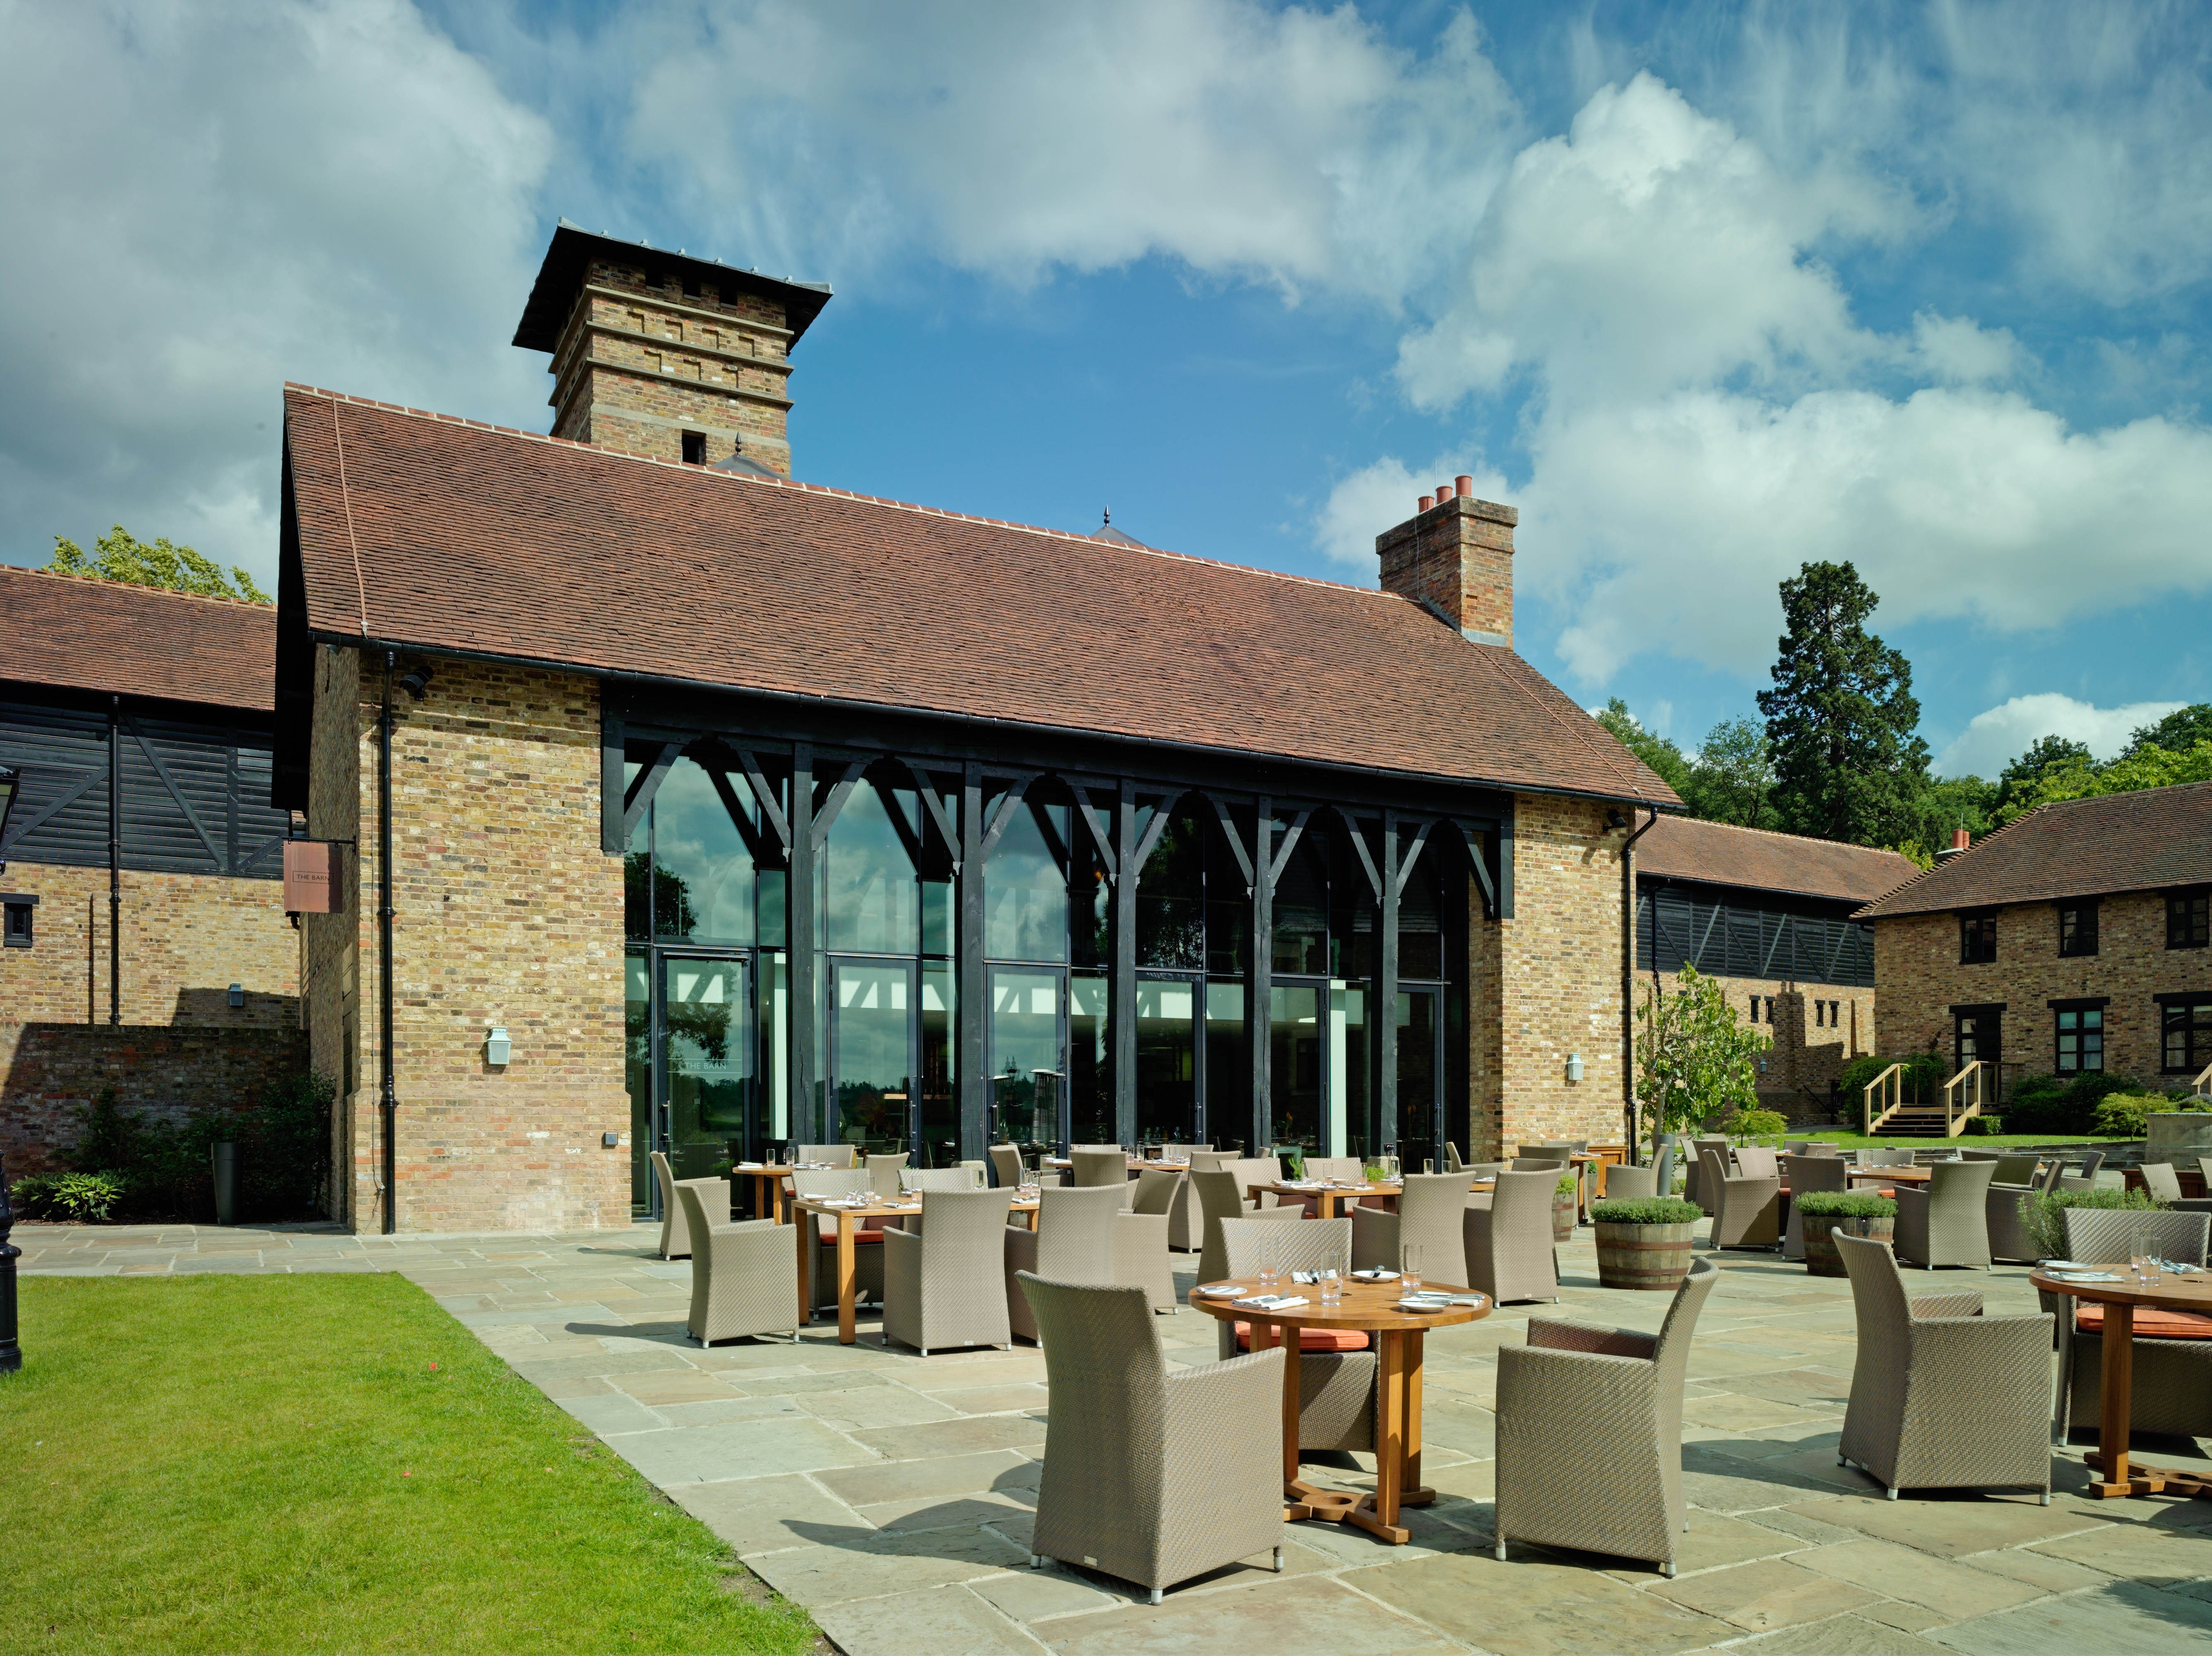 Image of The Barn at Coworth Park